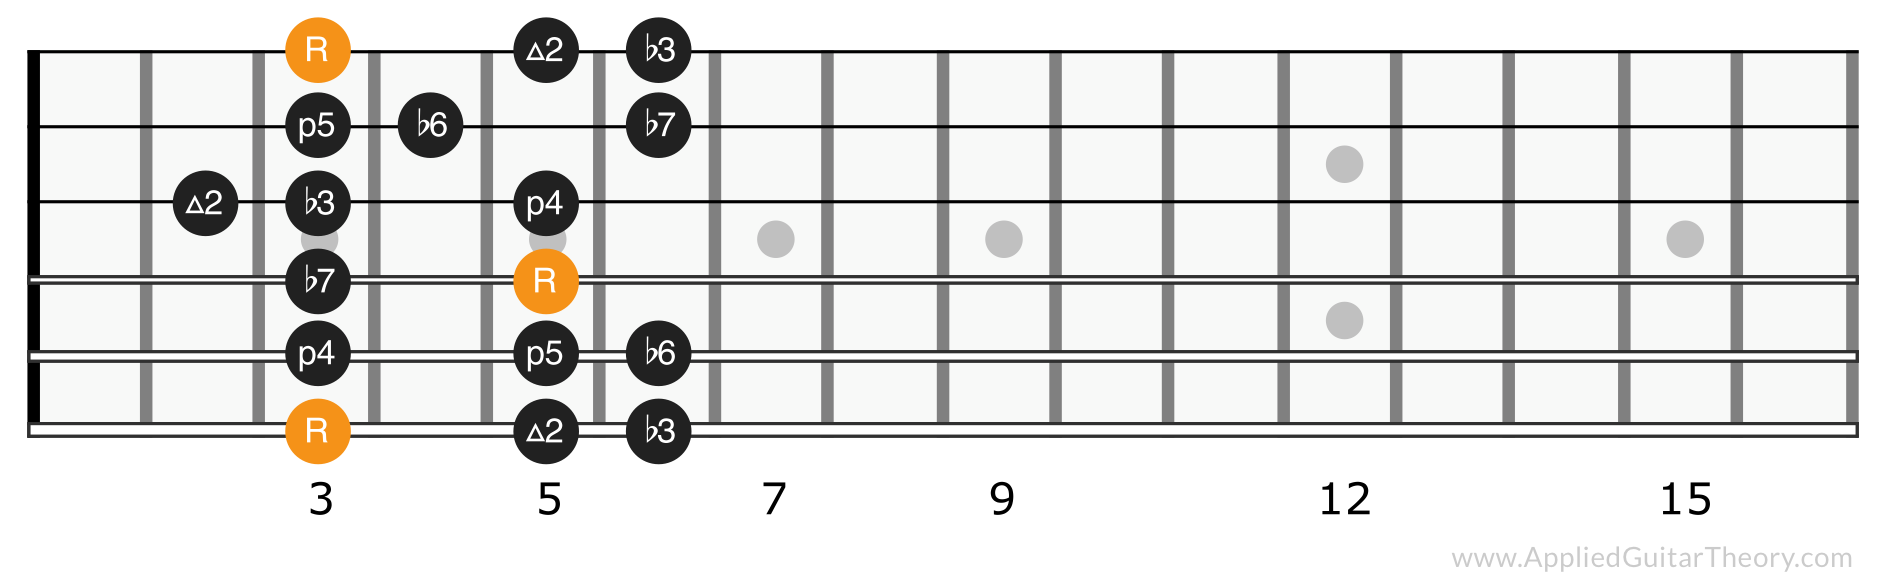 Minor scale position 1